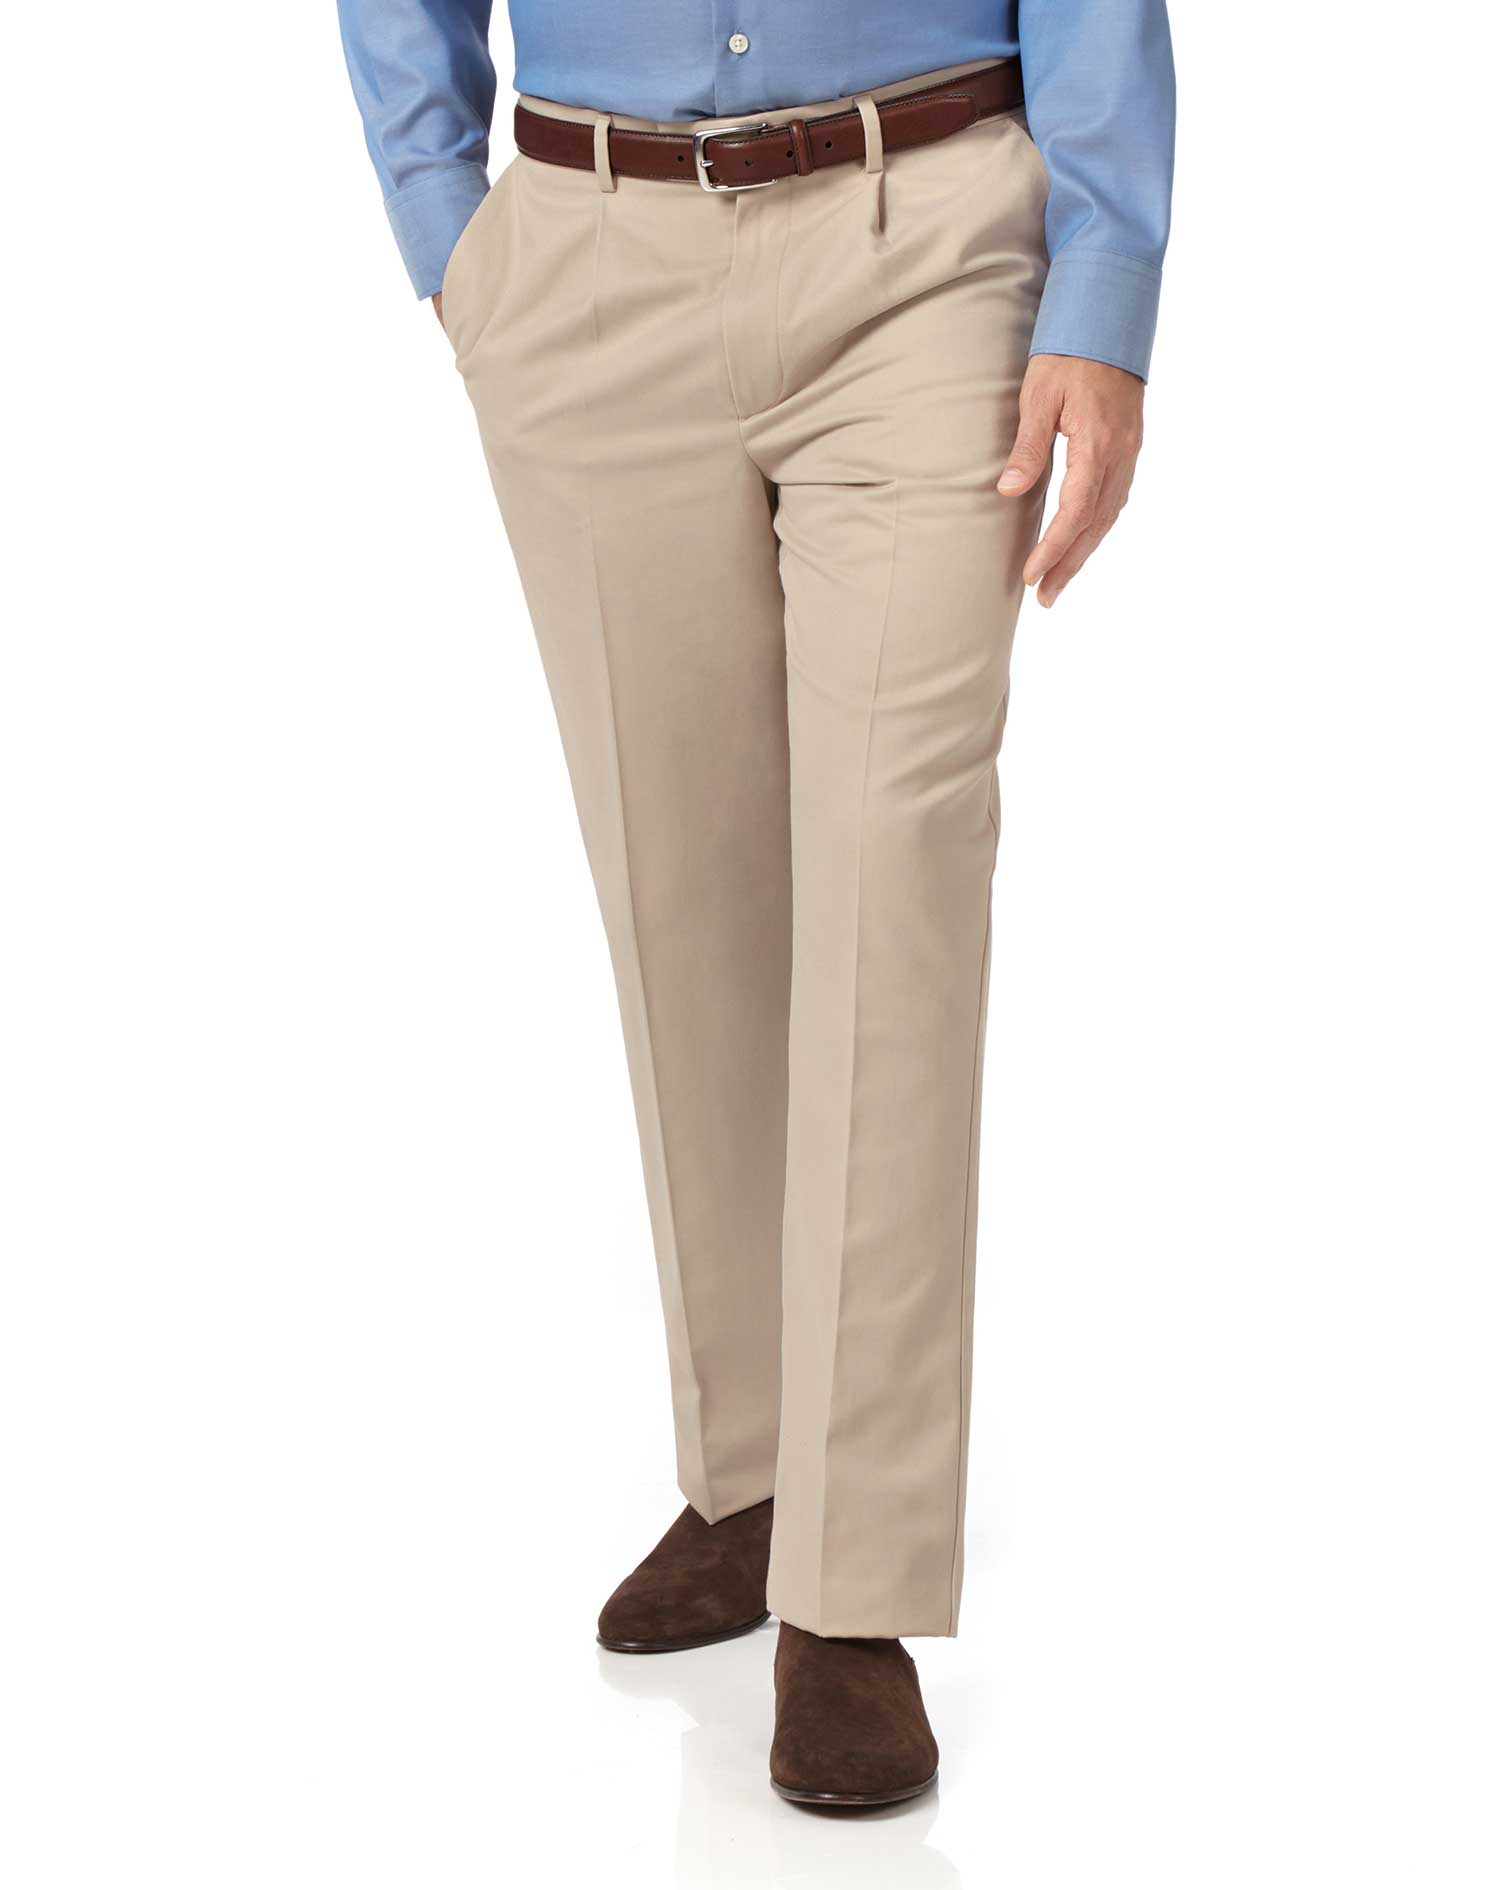 Stone Classic Fit Single Pleat Non-Iron Cotton Chino Trousers Size W32 L38 by Charles Tyrwhitt